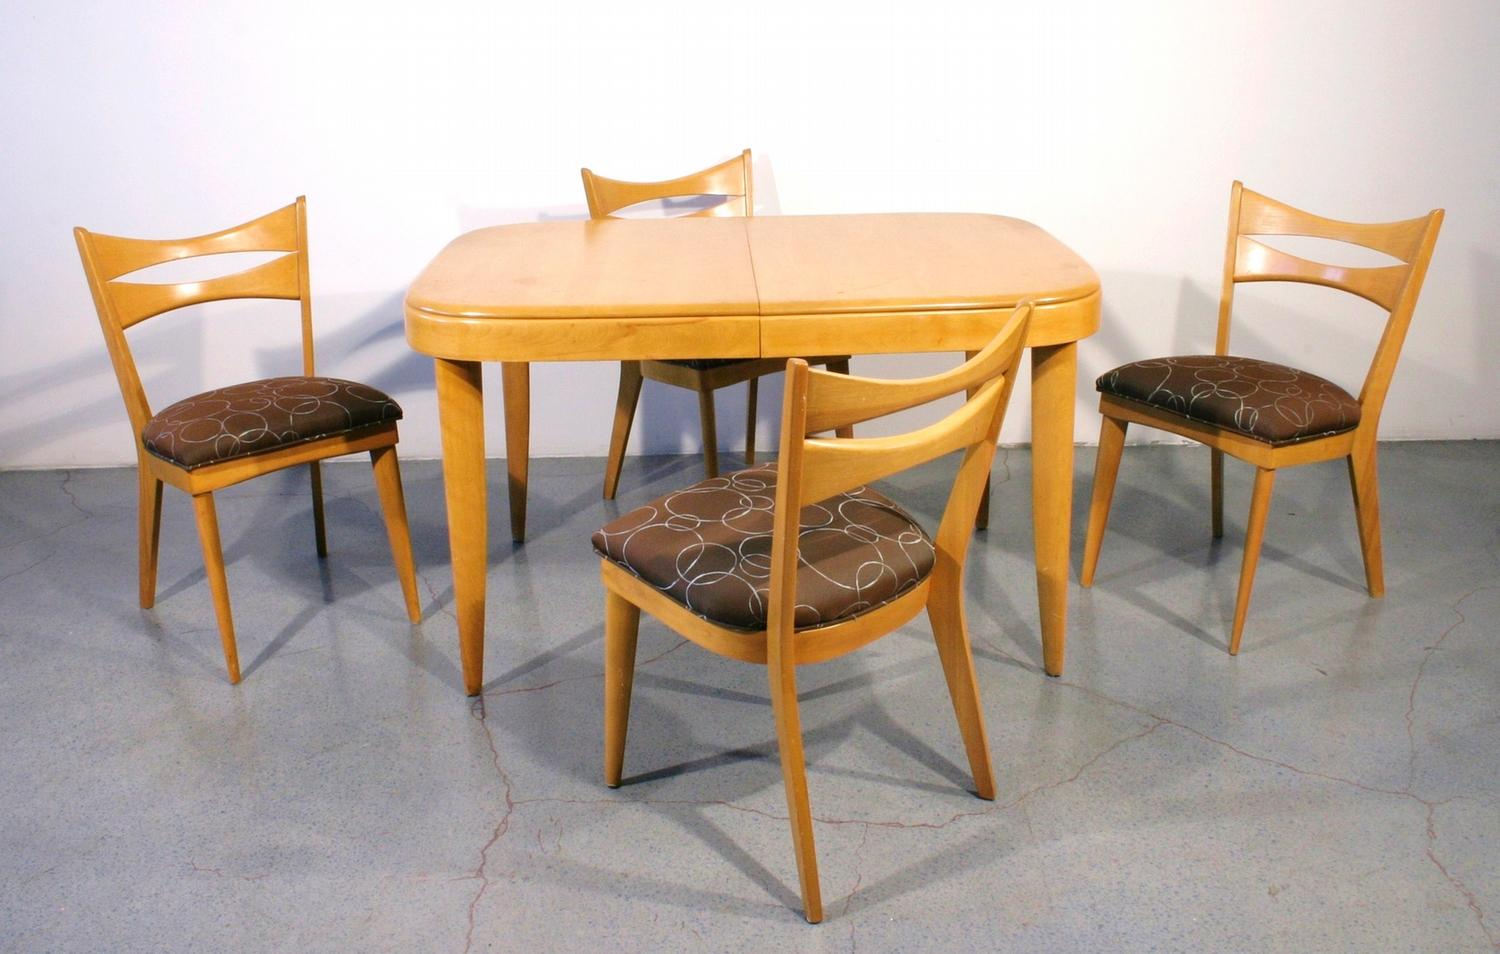 heywood wakefield dining table and chairs chair covers for sale australia room ideas